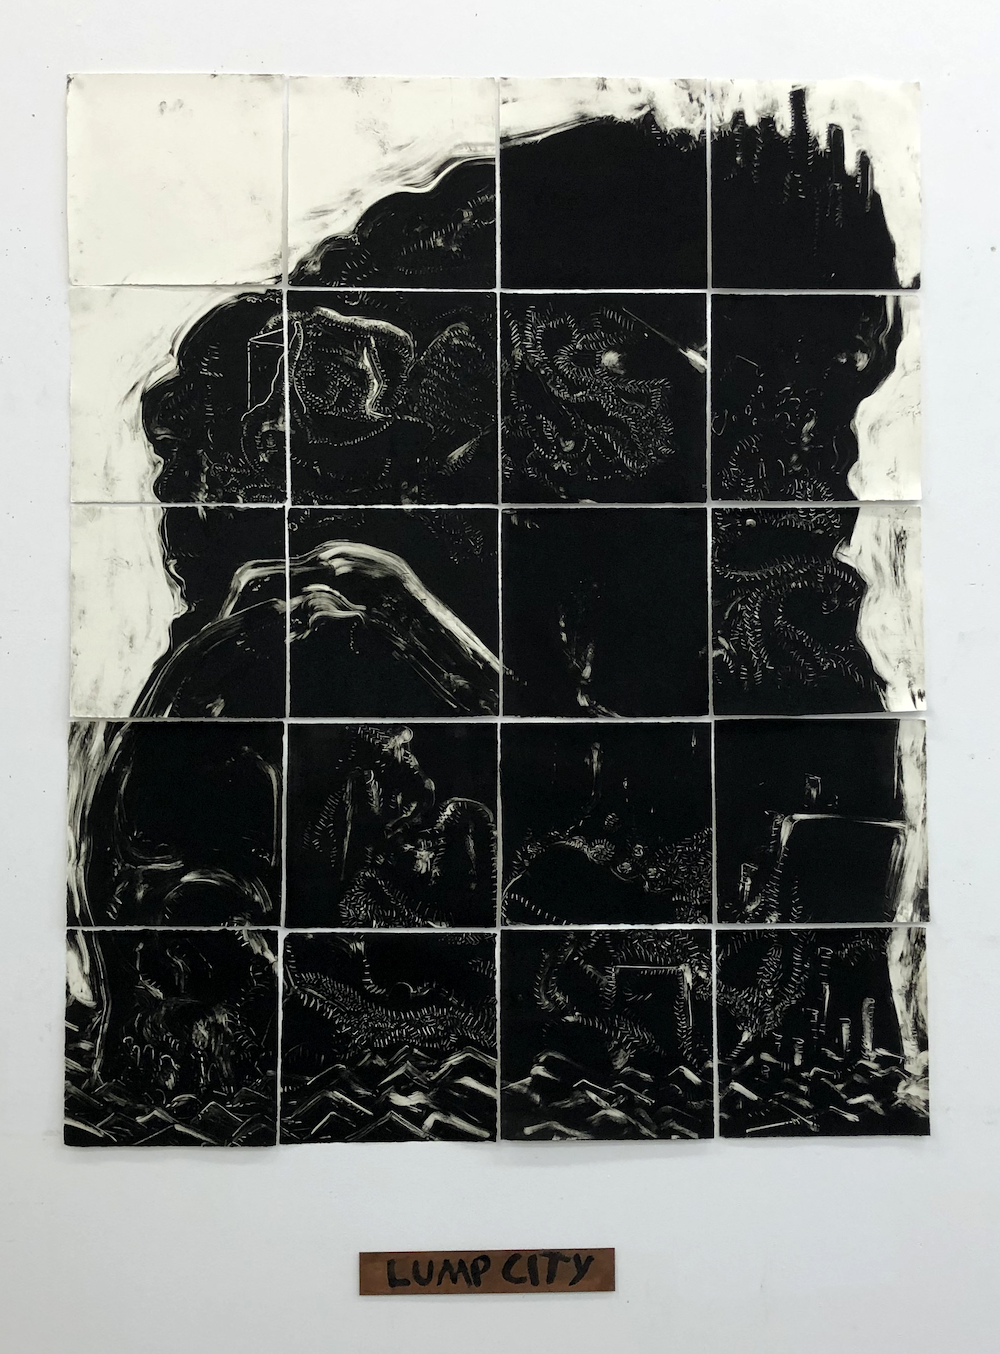 Claire Welch, Lump City, 2020, Monoprint on Hahnemuhle, Edition of 1 copy